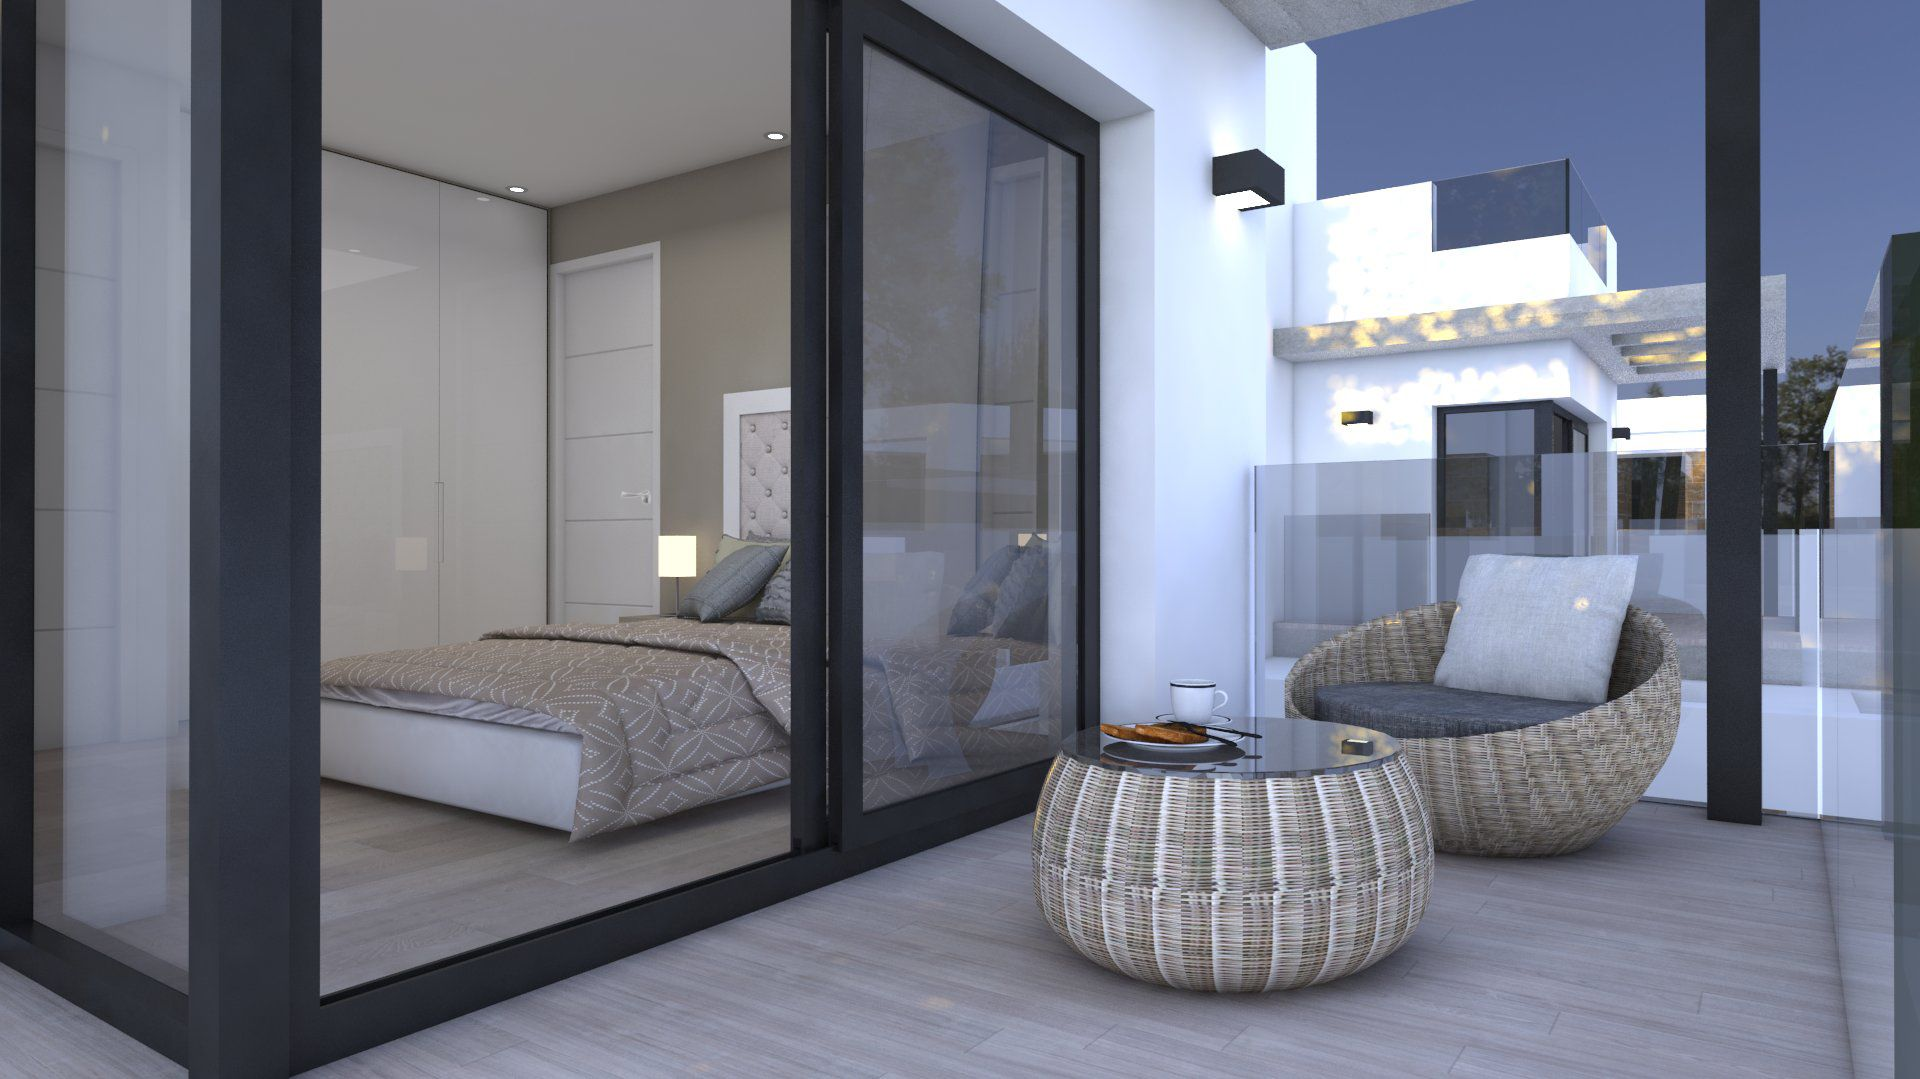 Exclusive villas of 1 or 2 floors in Torrevieja 3